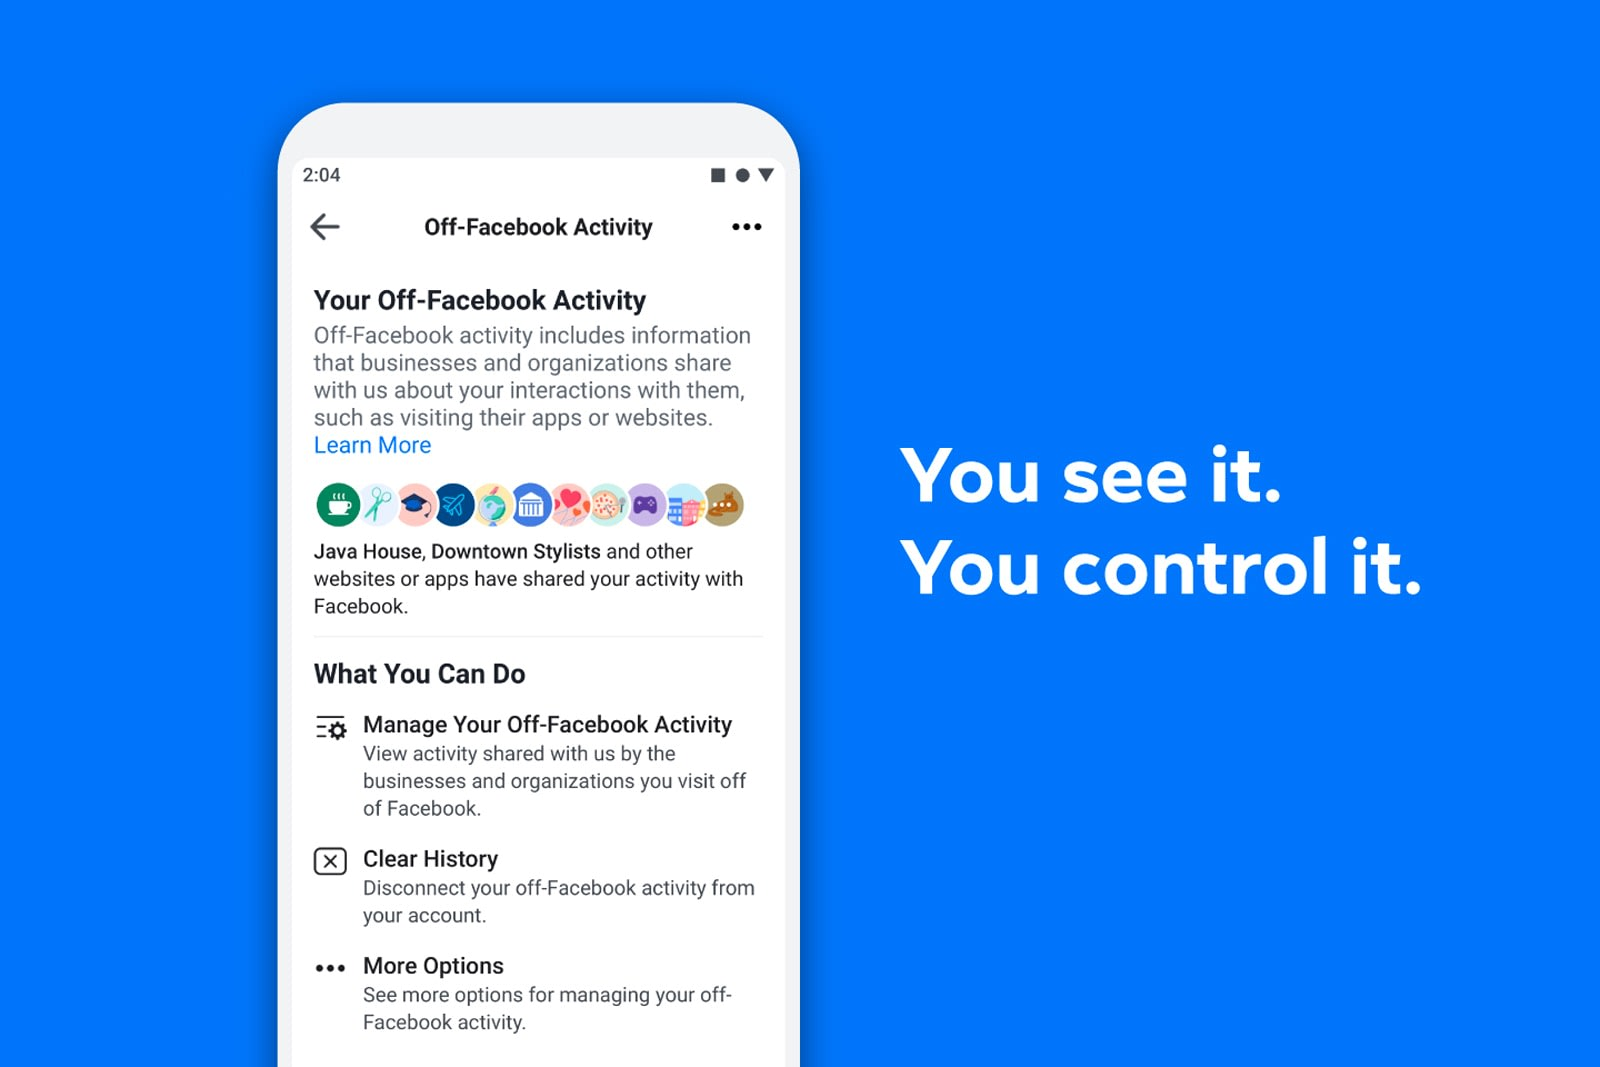 Facebook helps you control data shared from apps and websites